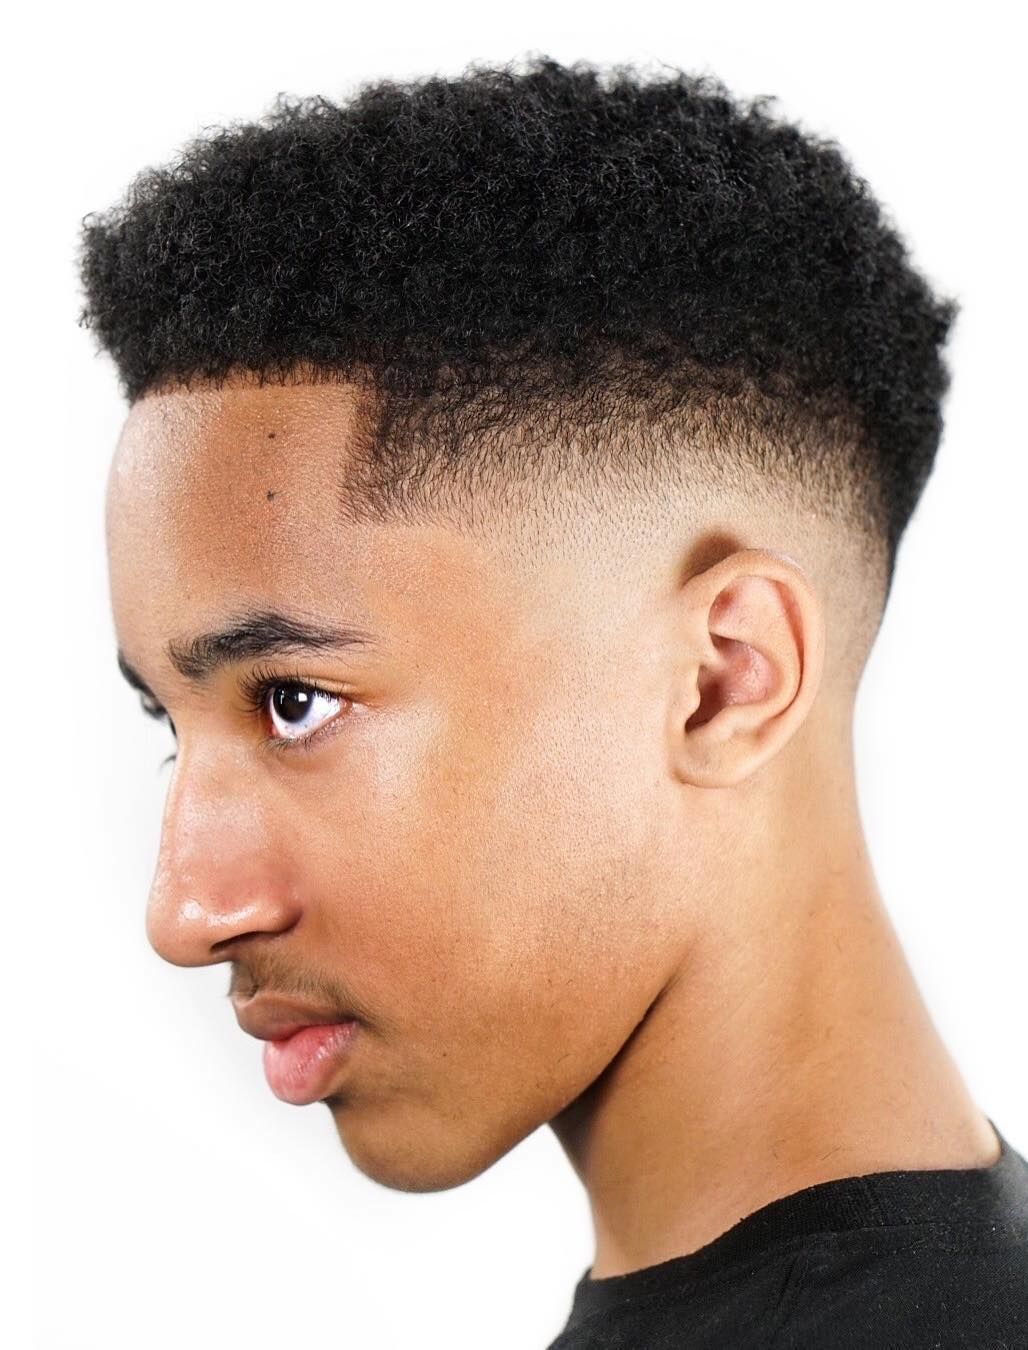 86 Fancy Hairstyle Ideas For Black Boys